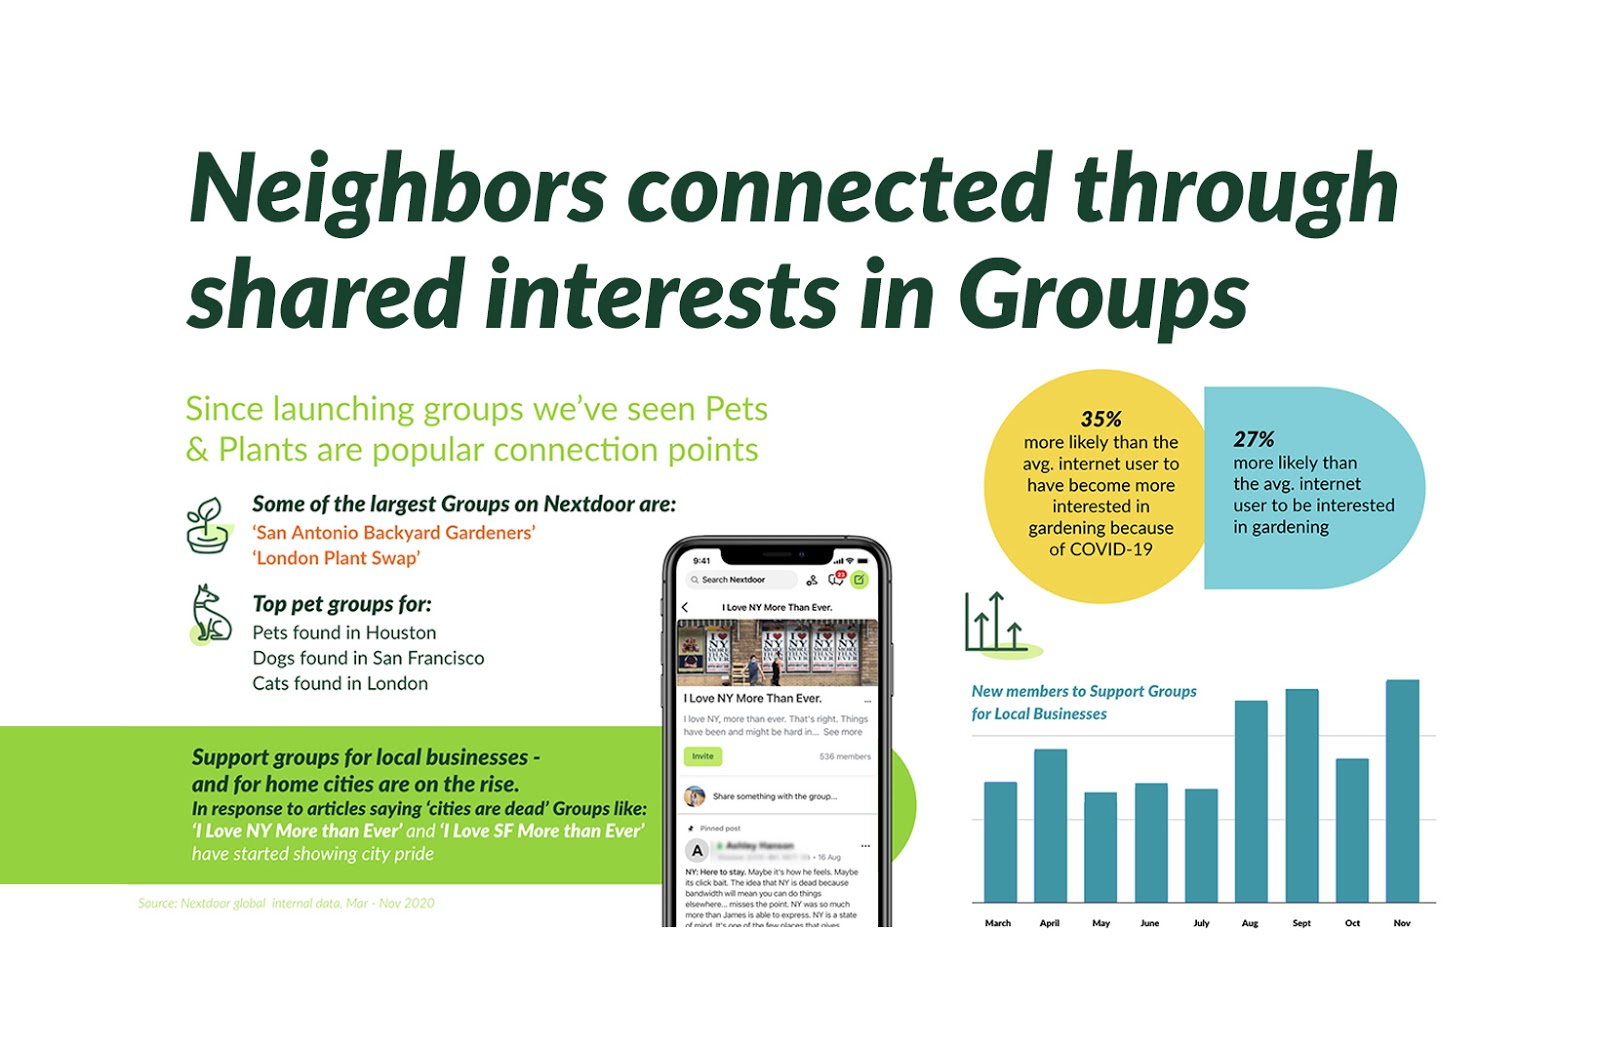 Neighbors connected through shared interests